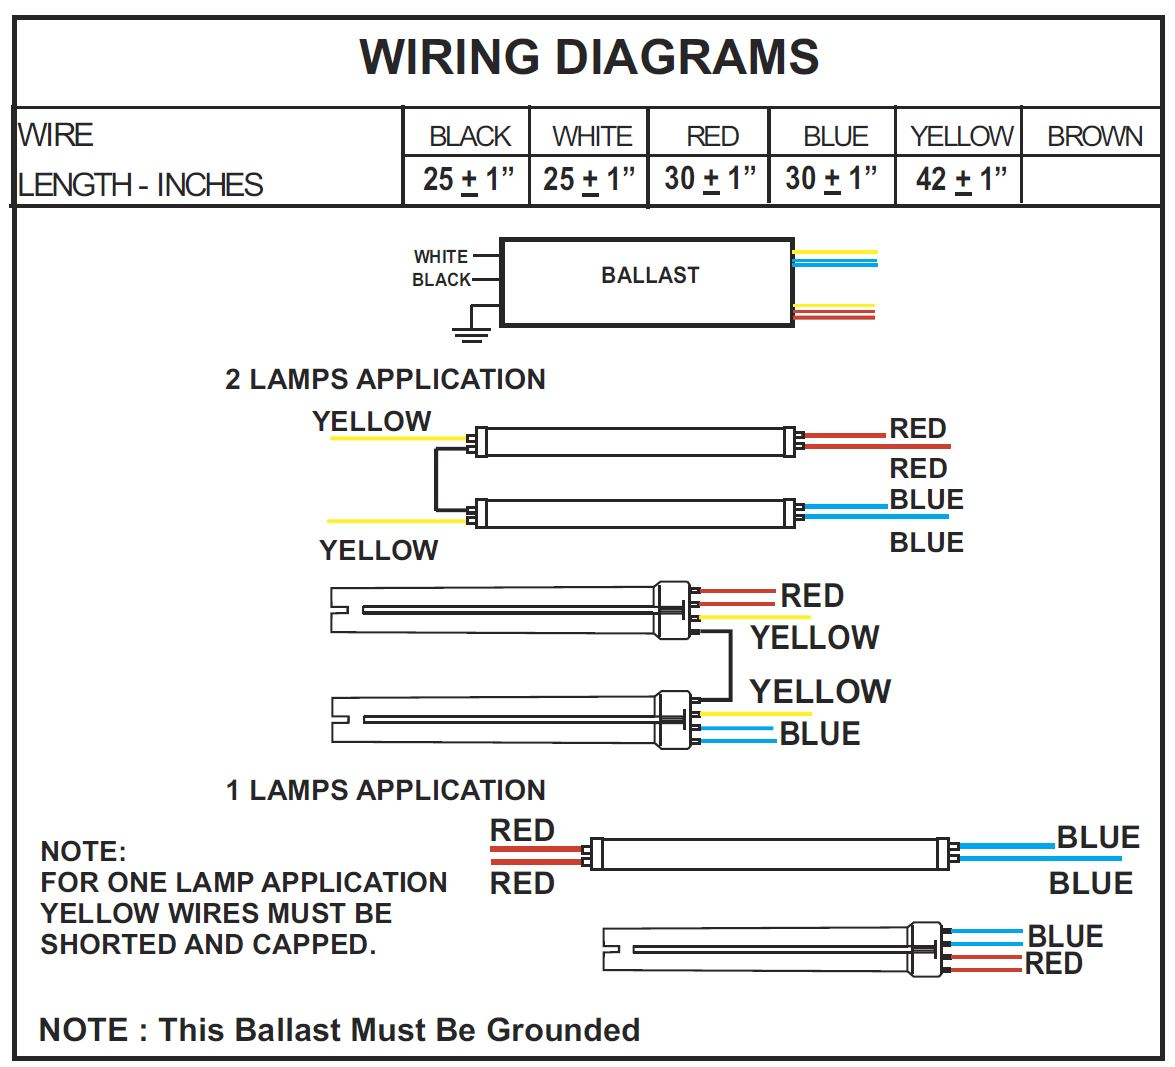 277 Volt Wiring For Lighting Electrical Diagram Schematics Tork 7102 208 Volts Library Of Diagrams Fluorescent T5 House Symbols U2022 277v Dimmer